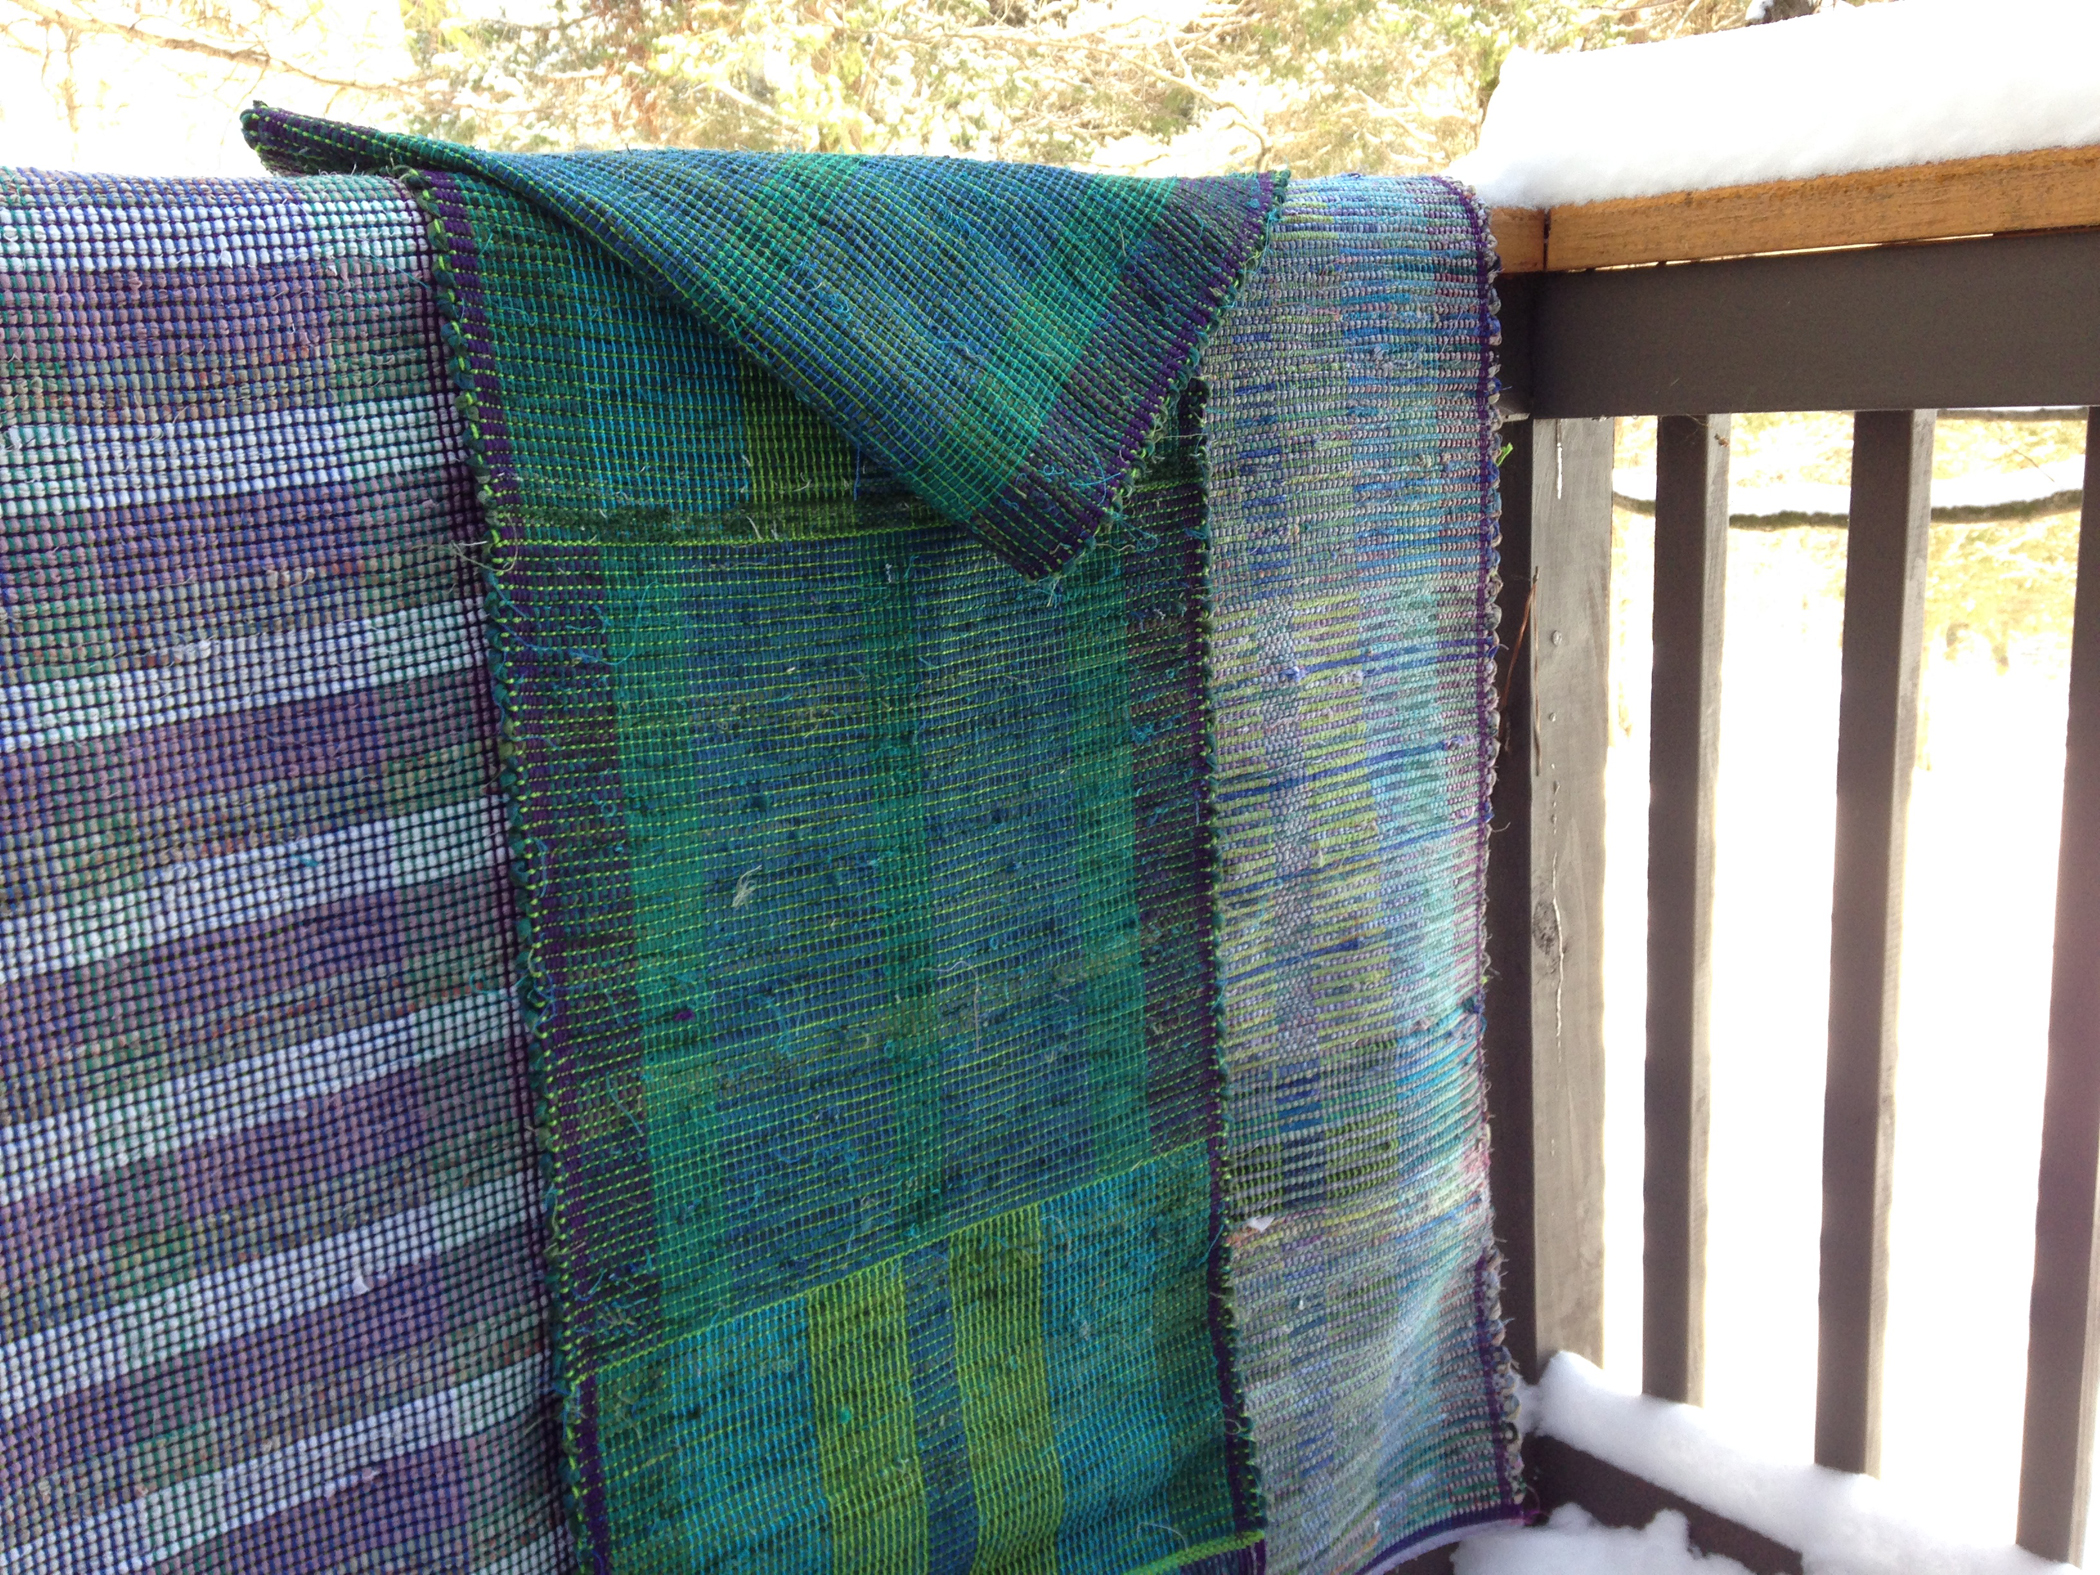 Weaving with Rags: A Cure for the Winter Blues